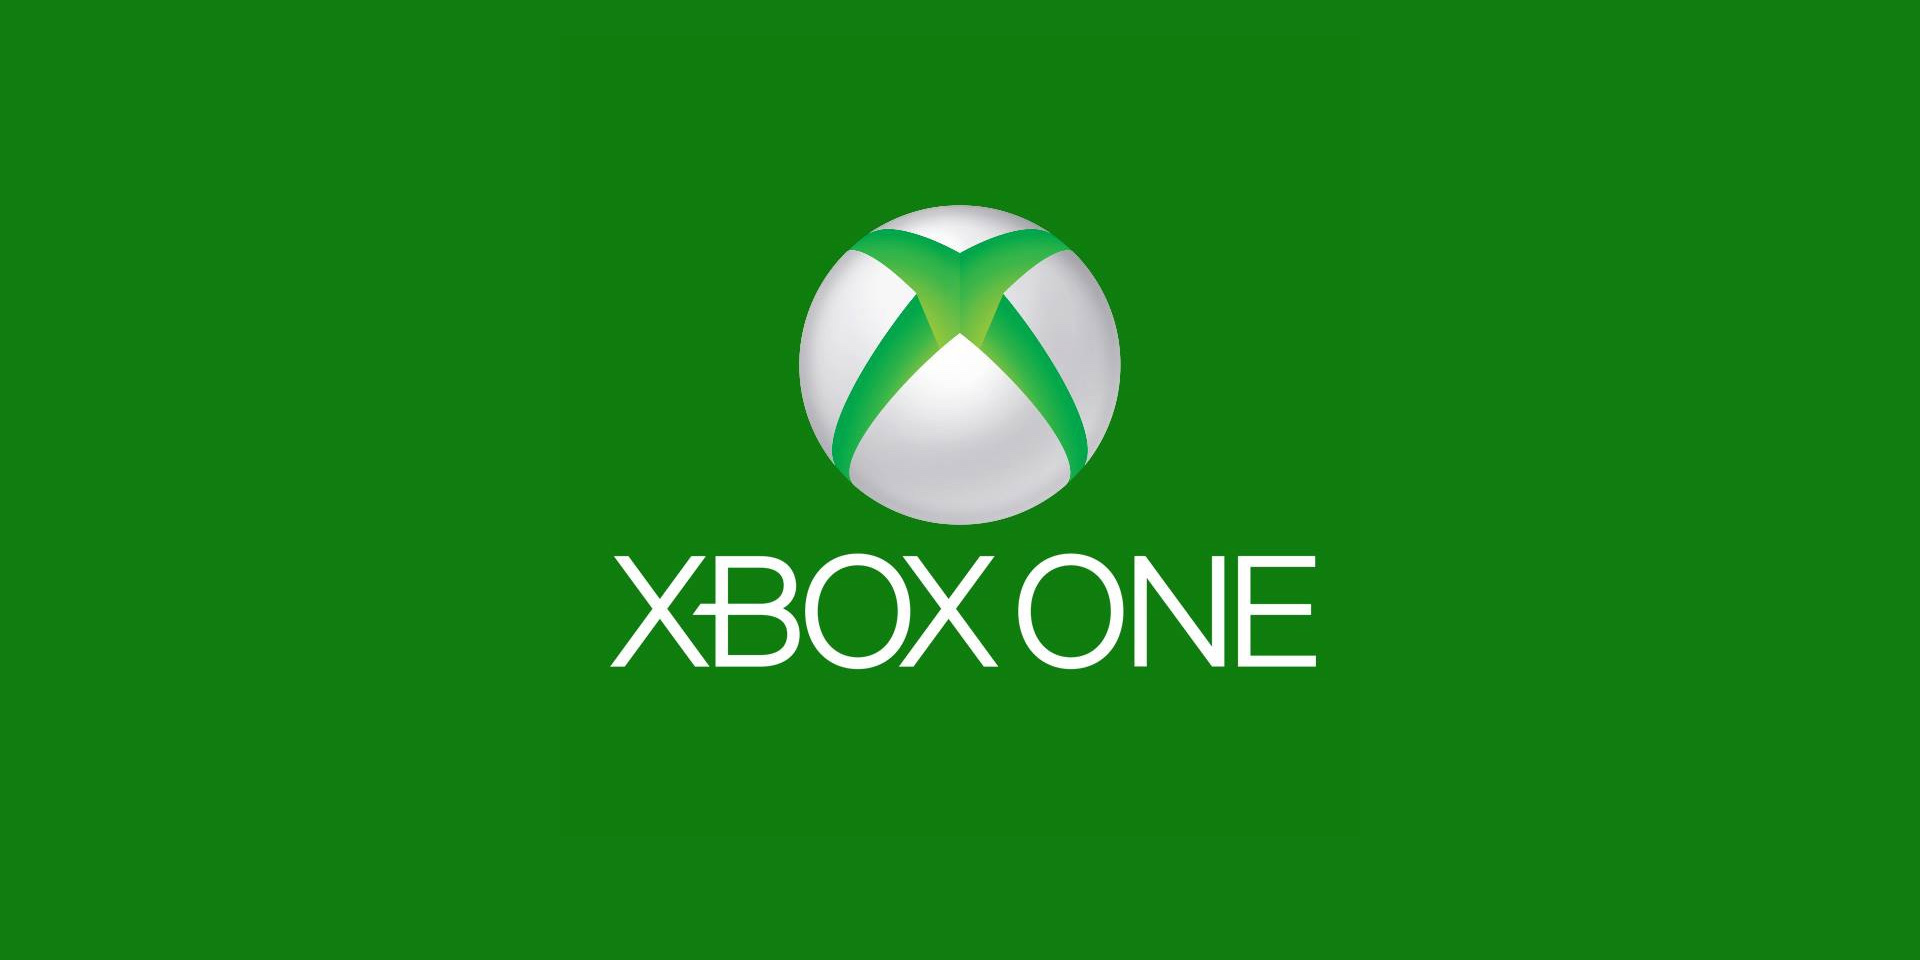 Grab $100 worth of Xbox Gift Cards for $89 w/ free email delivery + more at up to 25% off